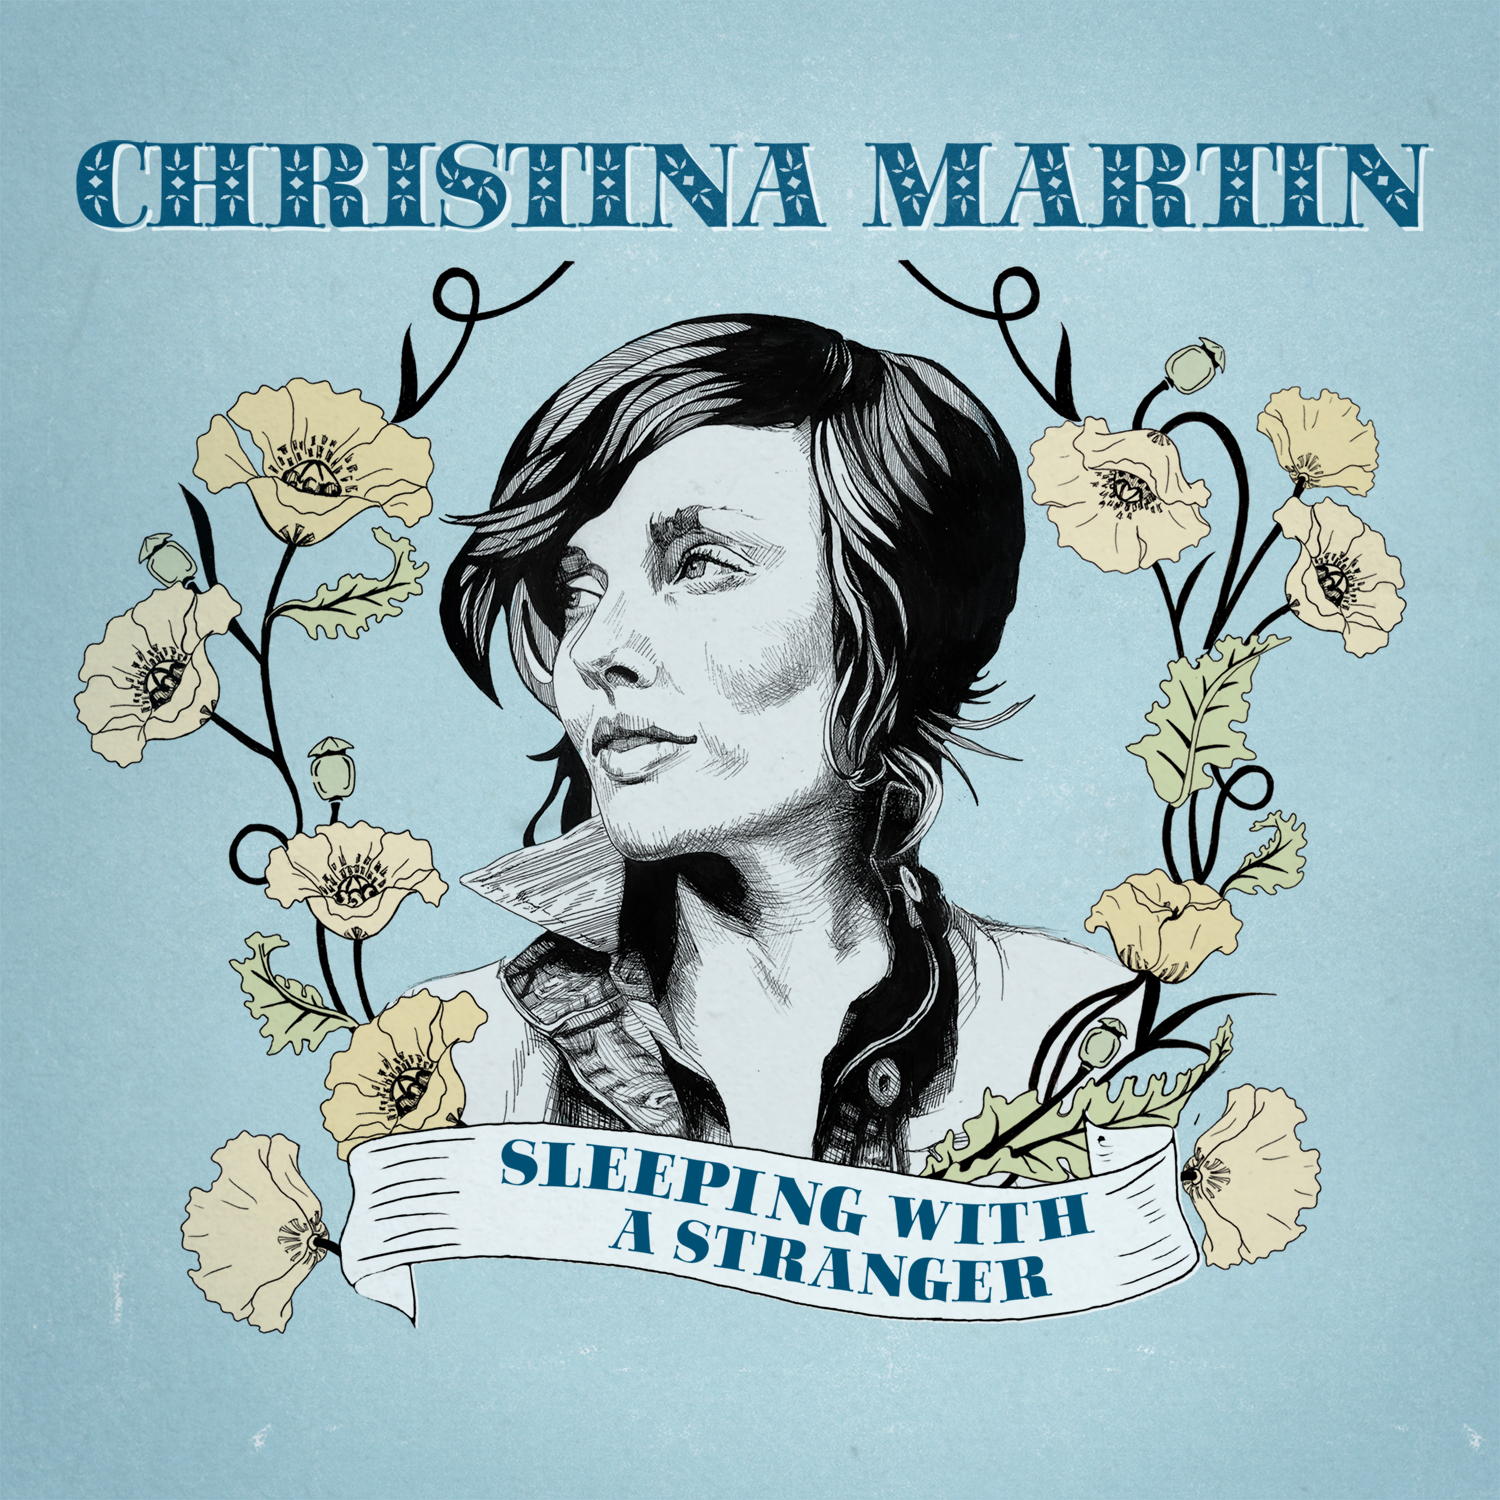 Sleeping with a stranger - 2013 Music Nova Scotia Recording of the Year